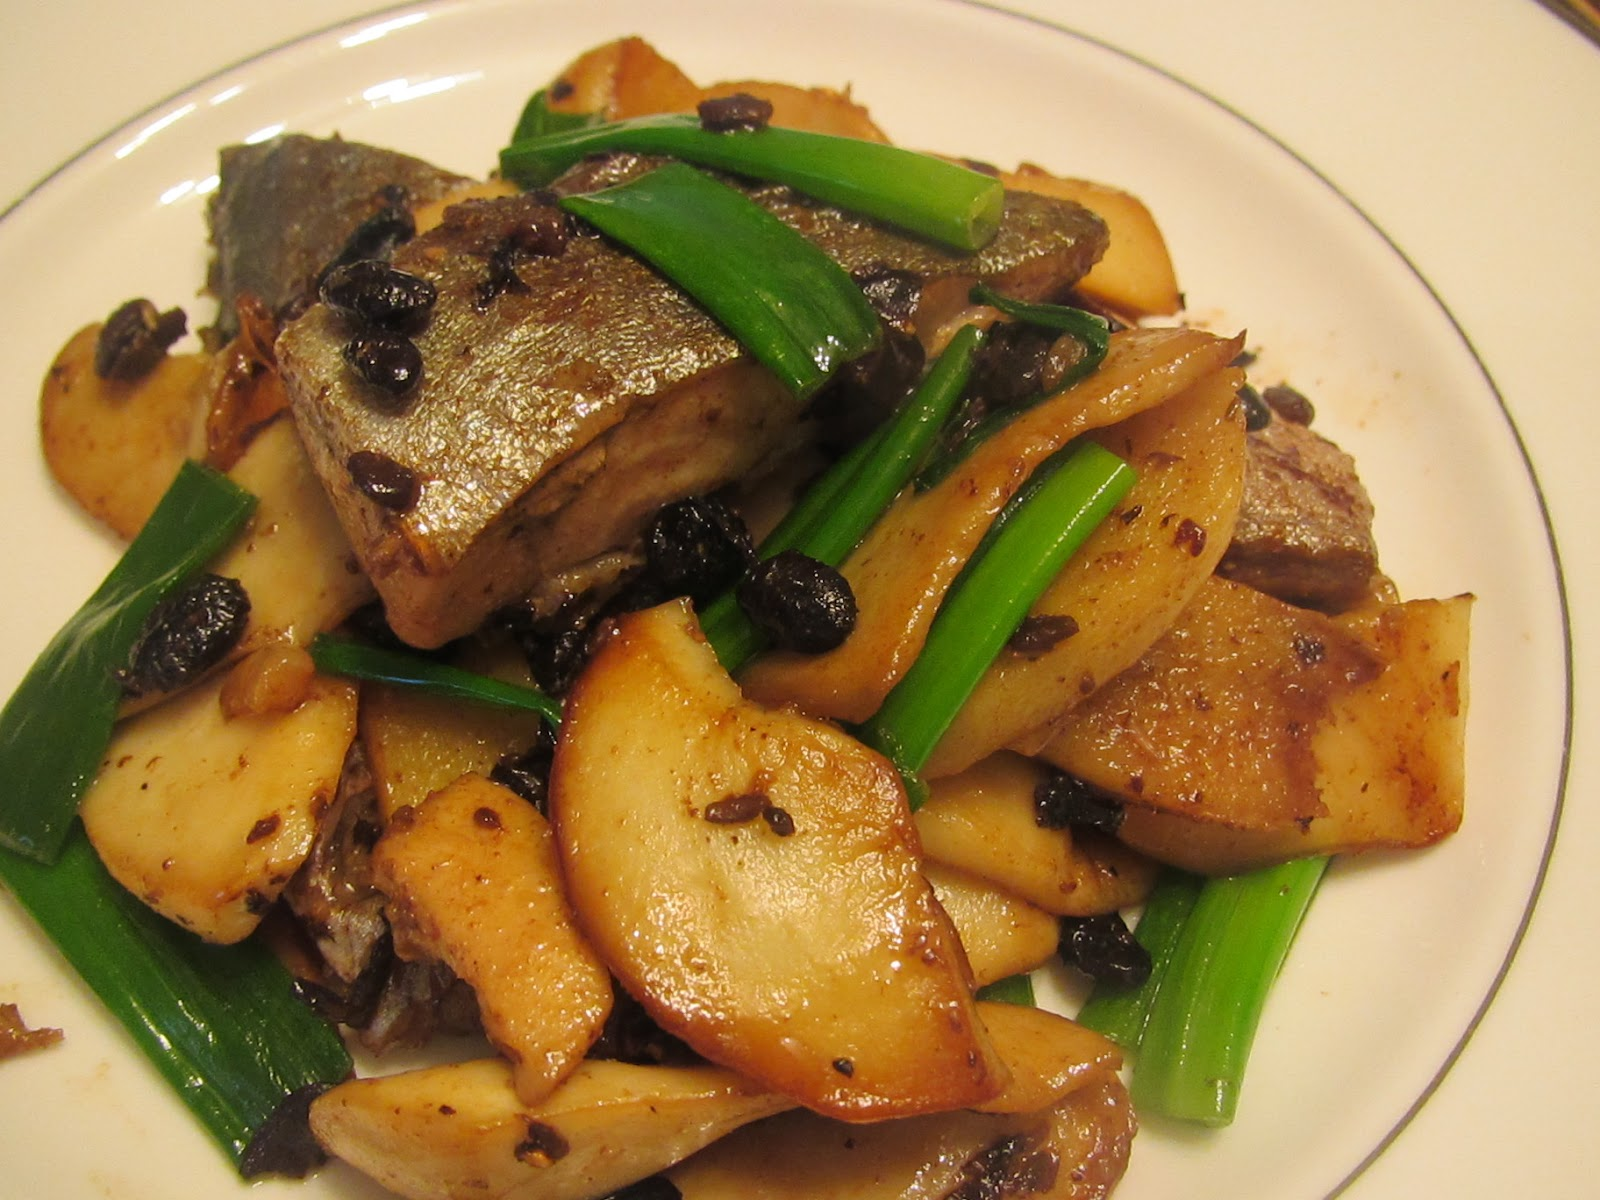 Stir Fry Oyster Mushroom and Fish